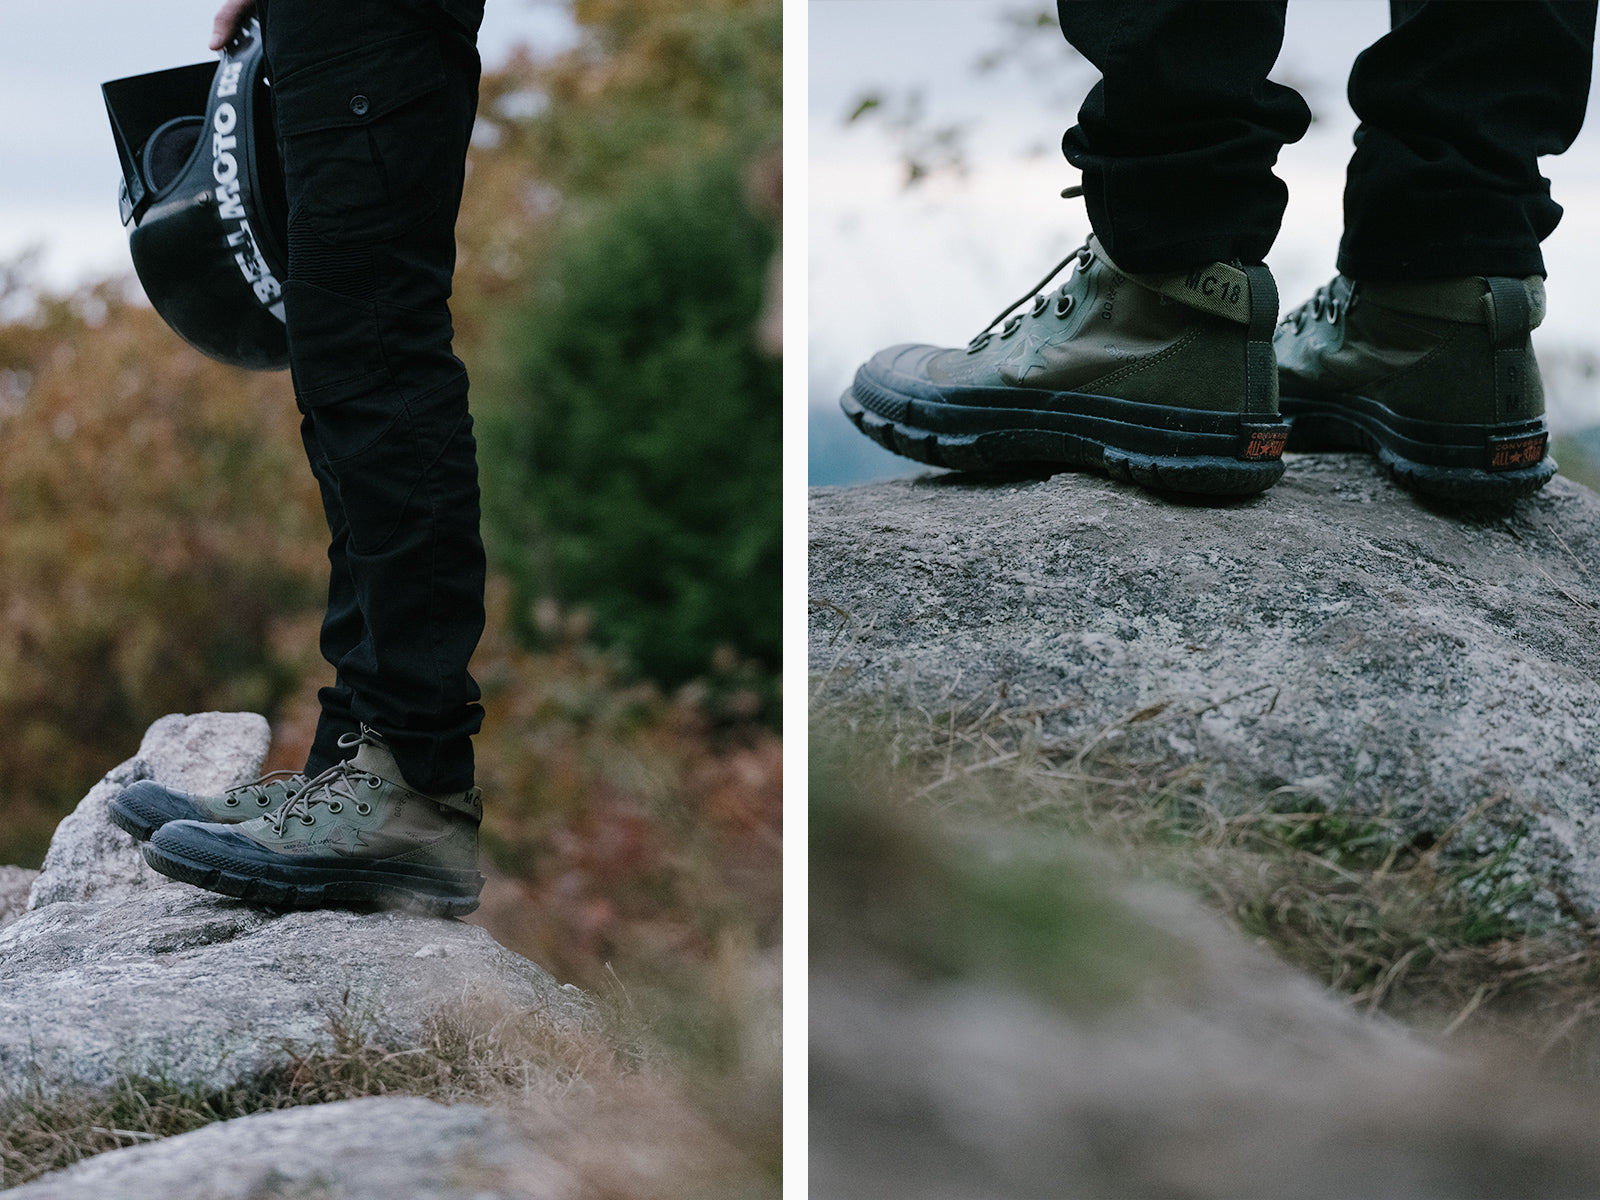 separation shoes 6c88a 88f25 Through the design lens of rugged utility, the MC18 collection reinterprets  three classic Converse styles — the Chuck Taylor All Star, ...